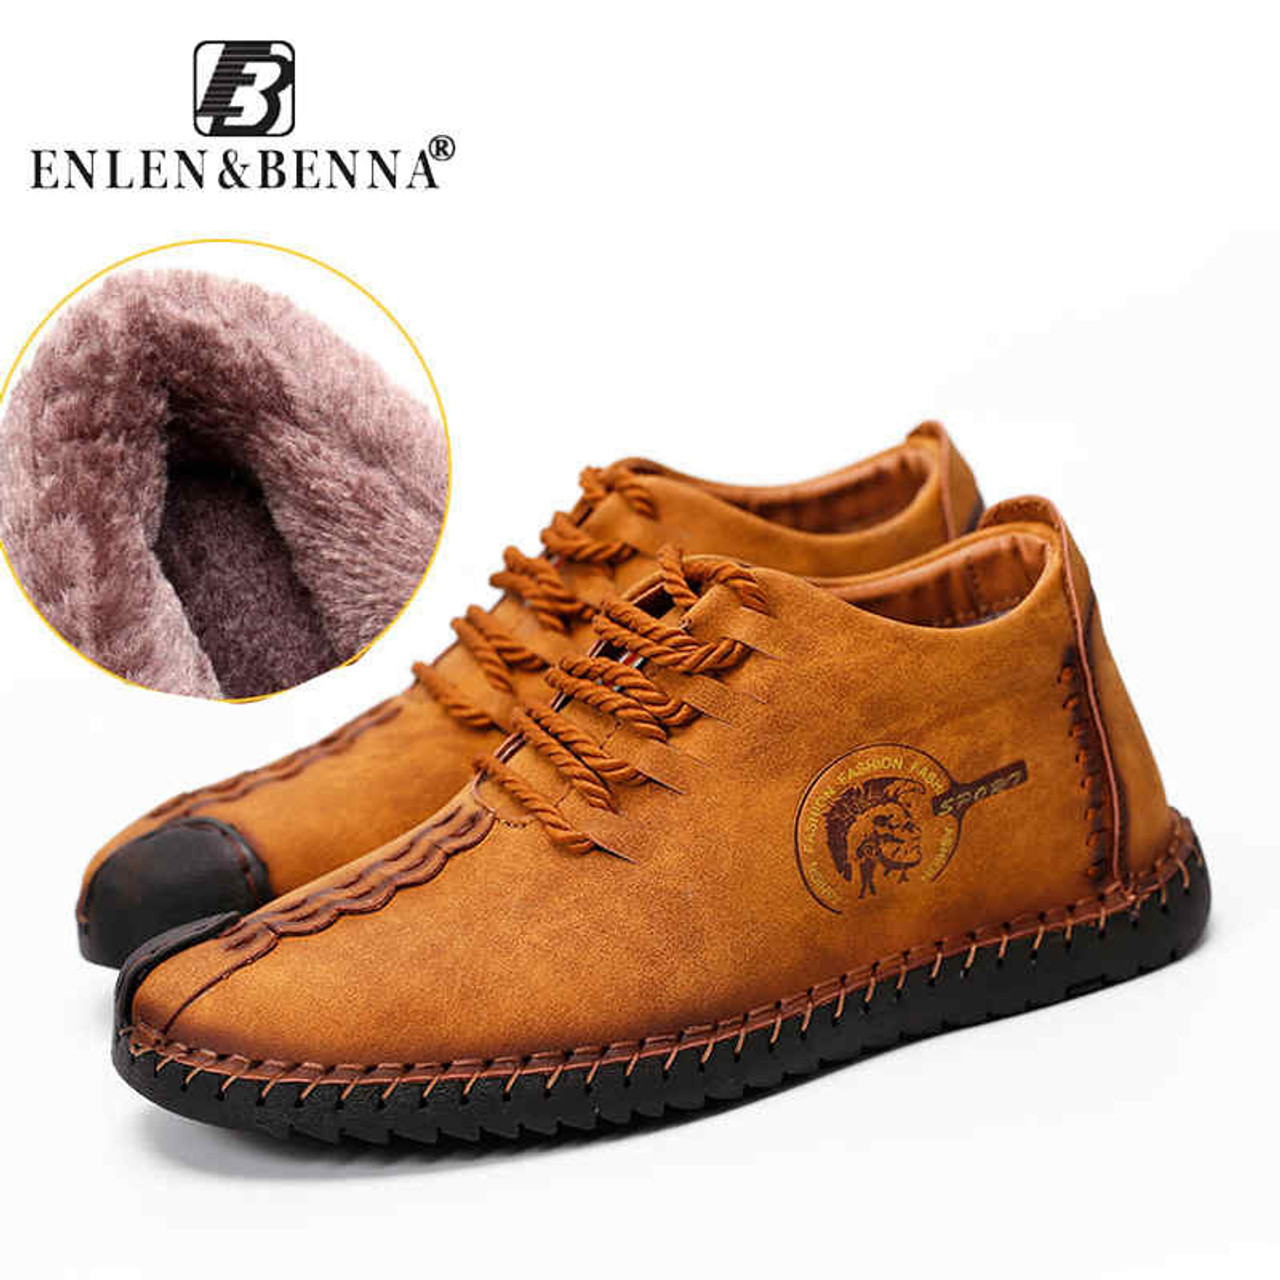 64ff1392bc21 2018 New Winter Brand Fashion Comfortable Men Shoes Laces Up Solid Leather  Shoes for Men Causal ...